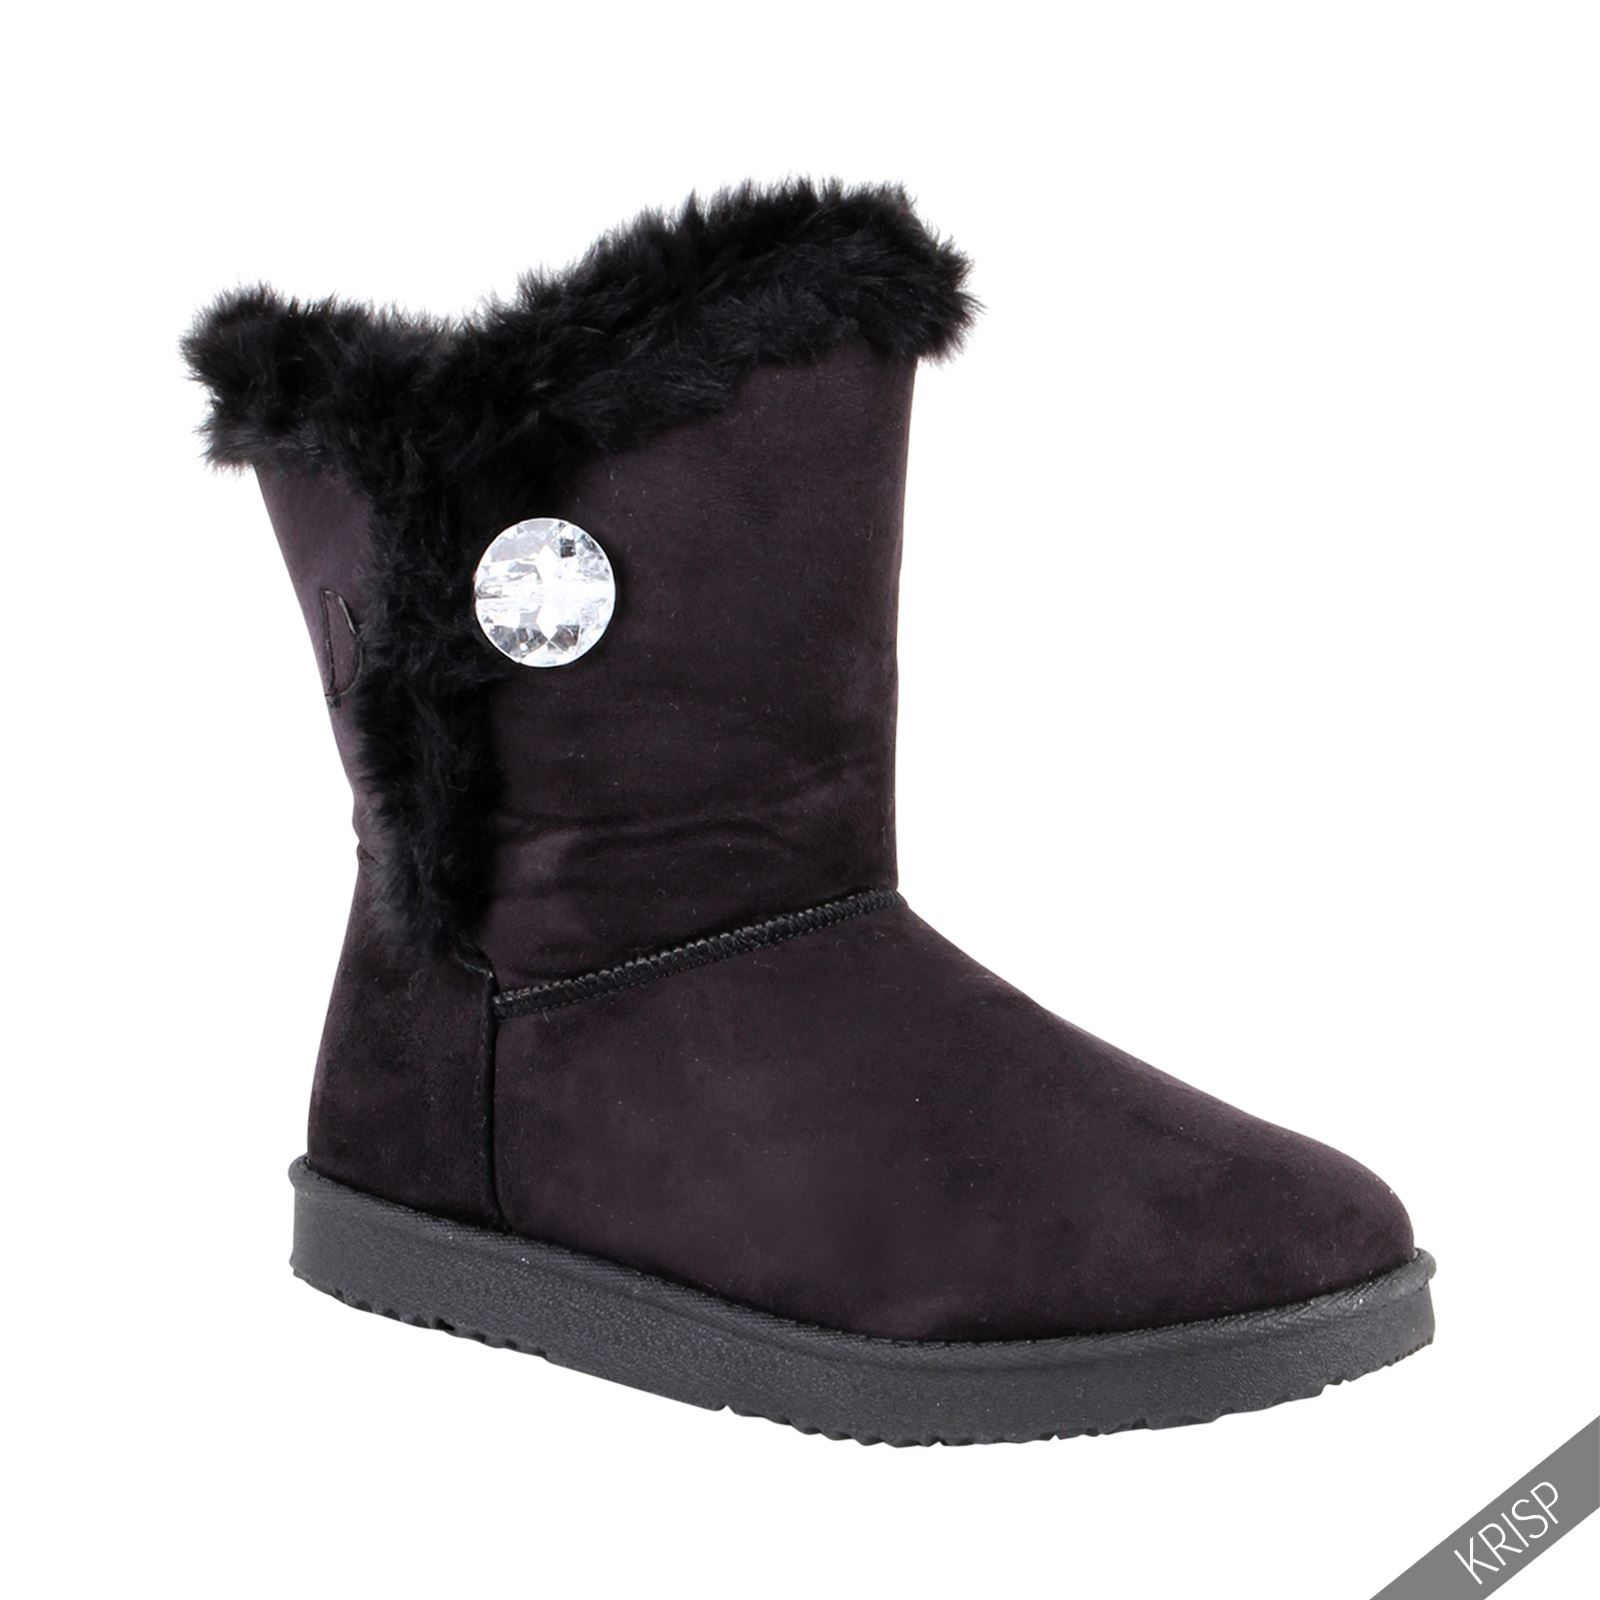 Womens Warm Fur Lined Snug Ankle Calf Boots Flat Ladies